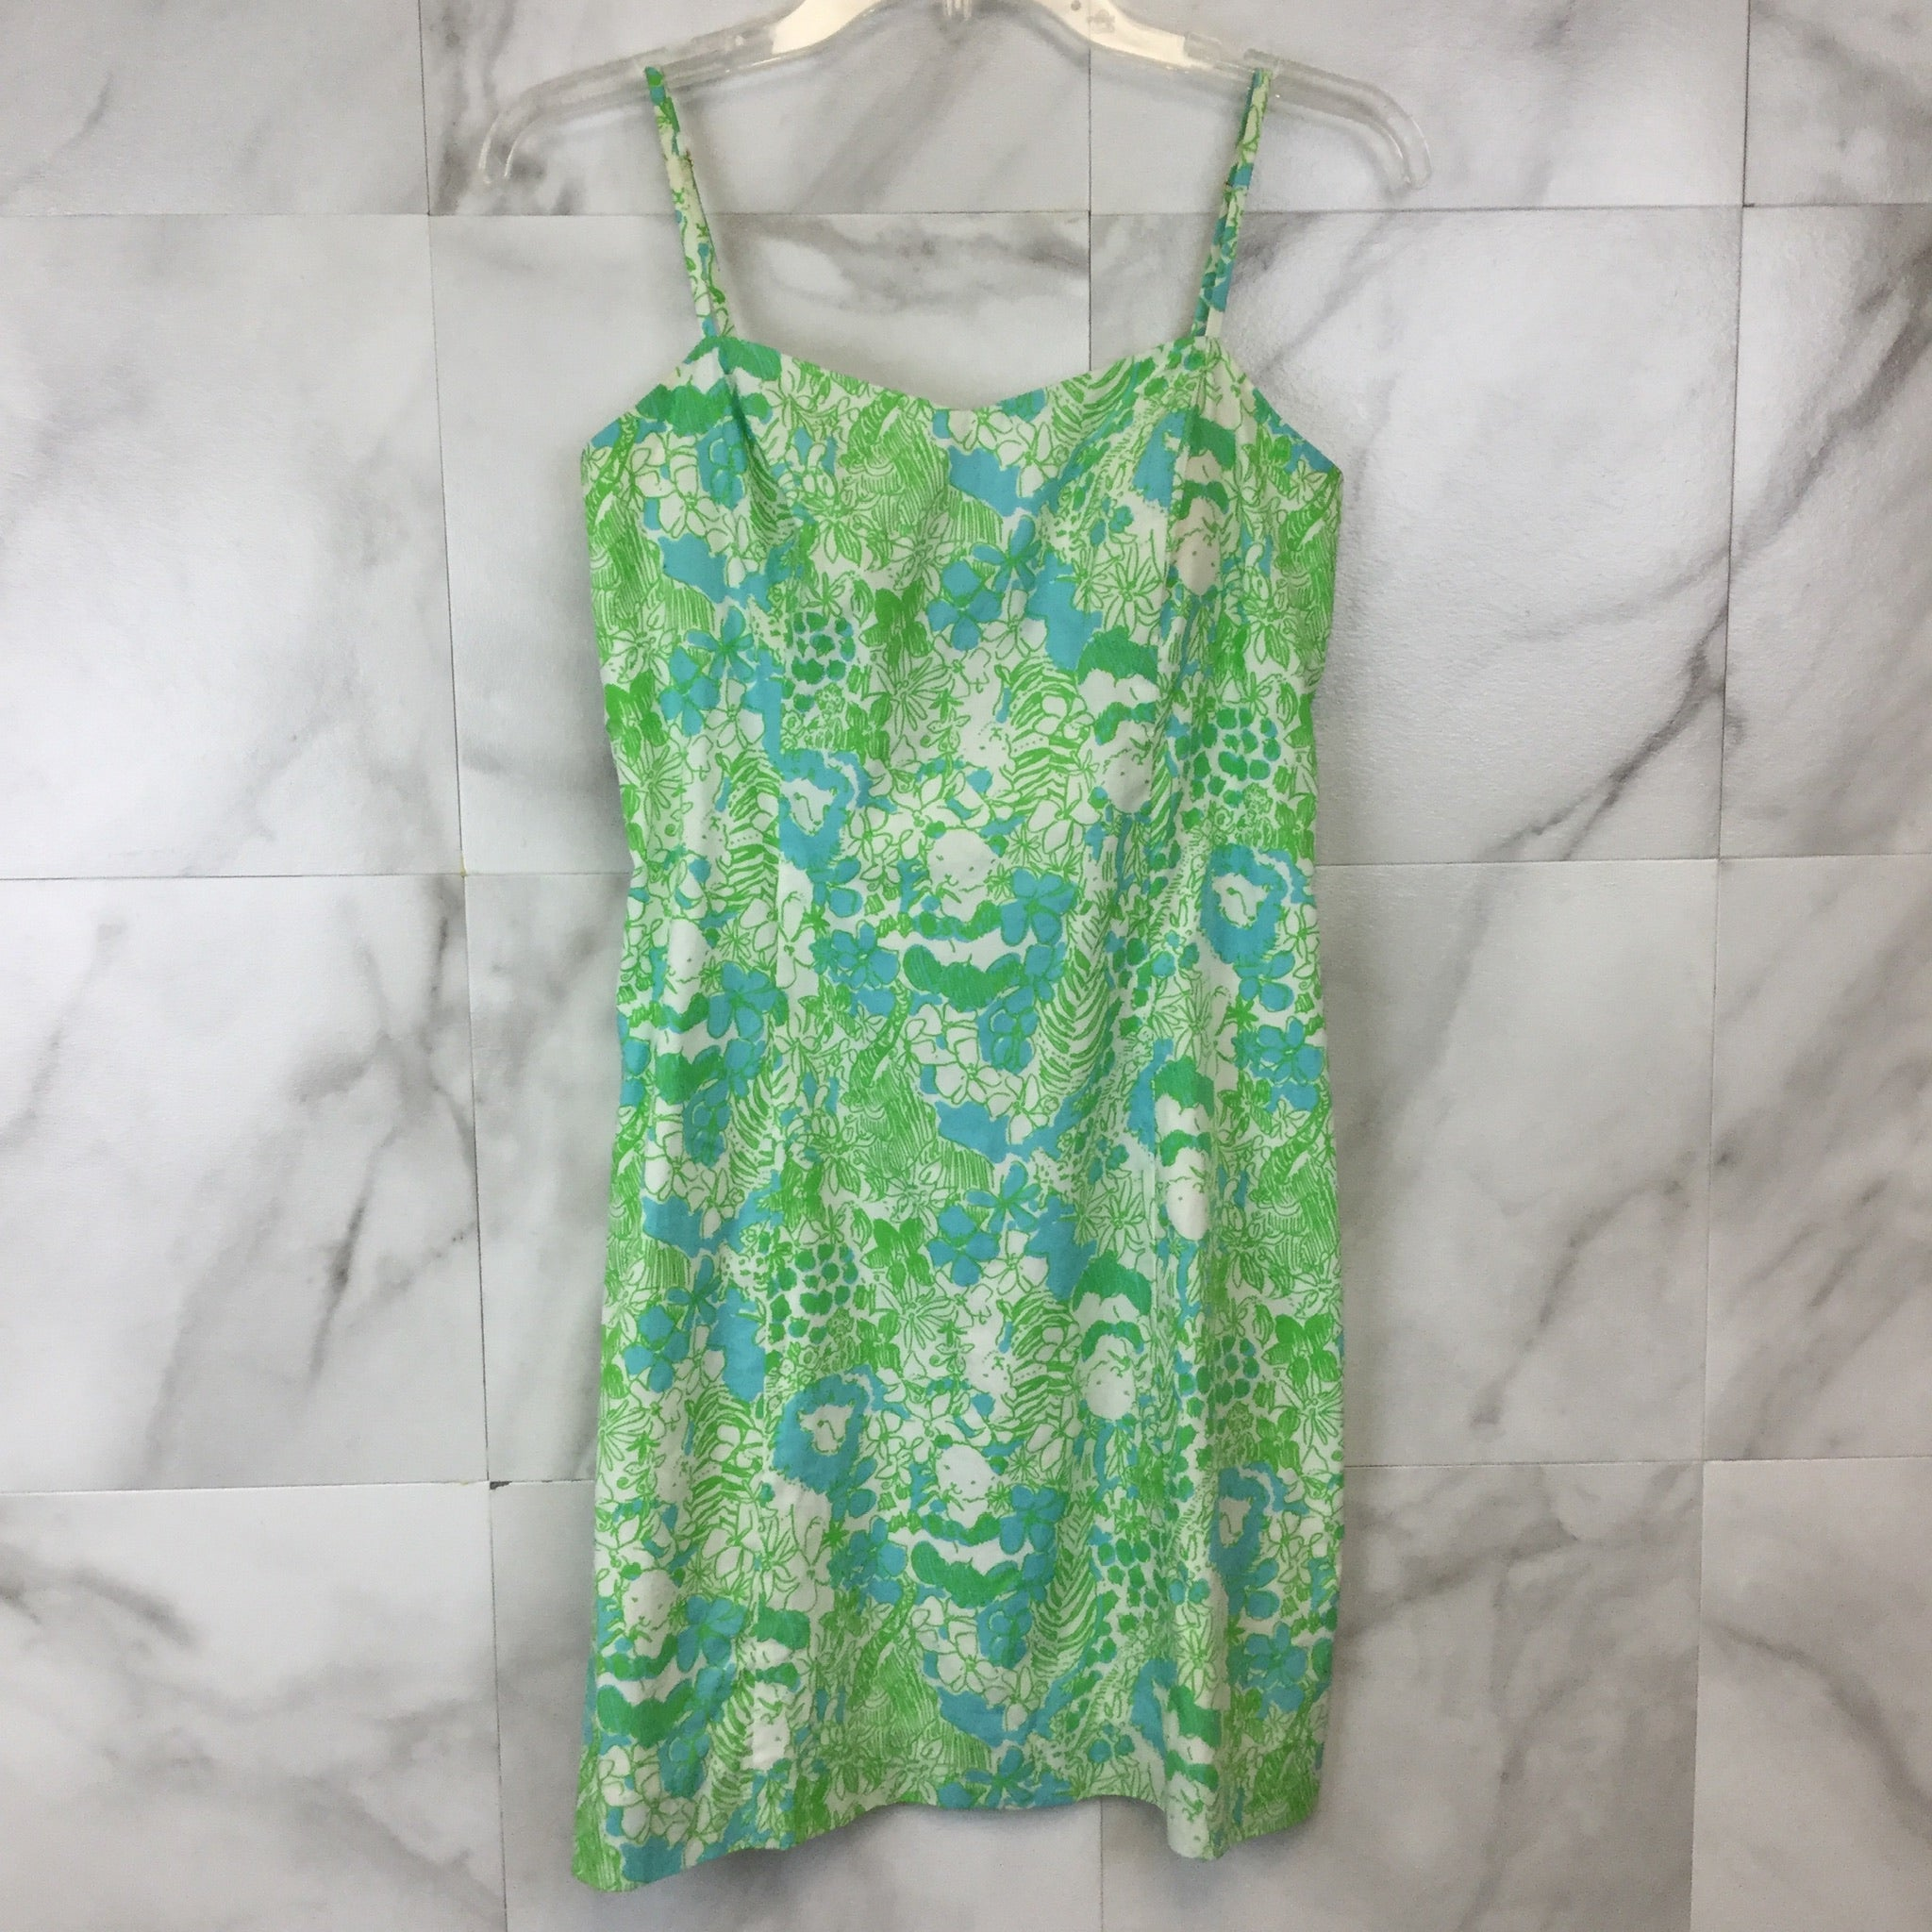 Lilly Pulitzer McCallum Dress - size 2